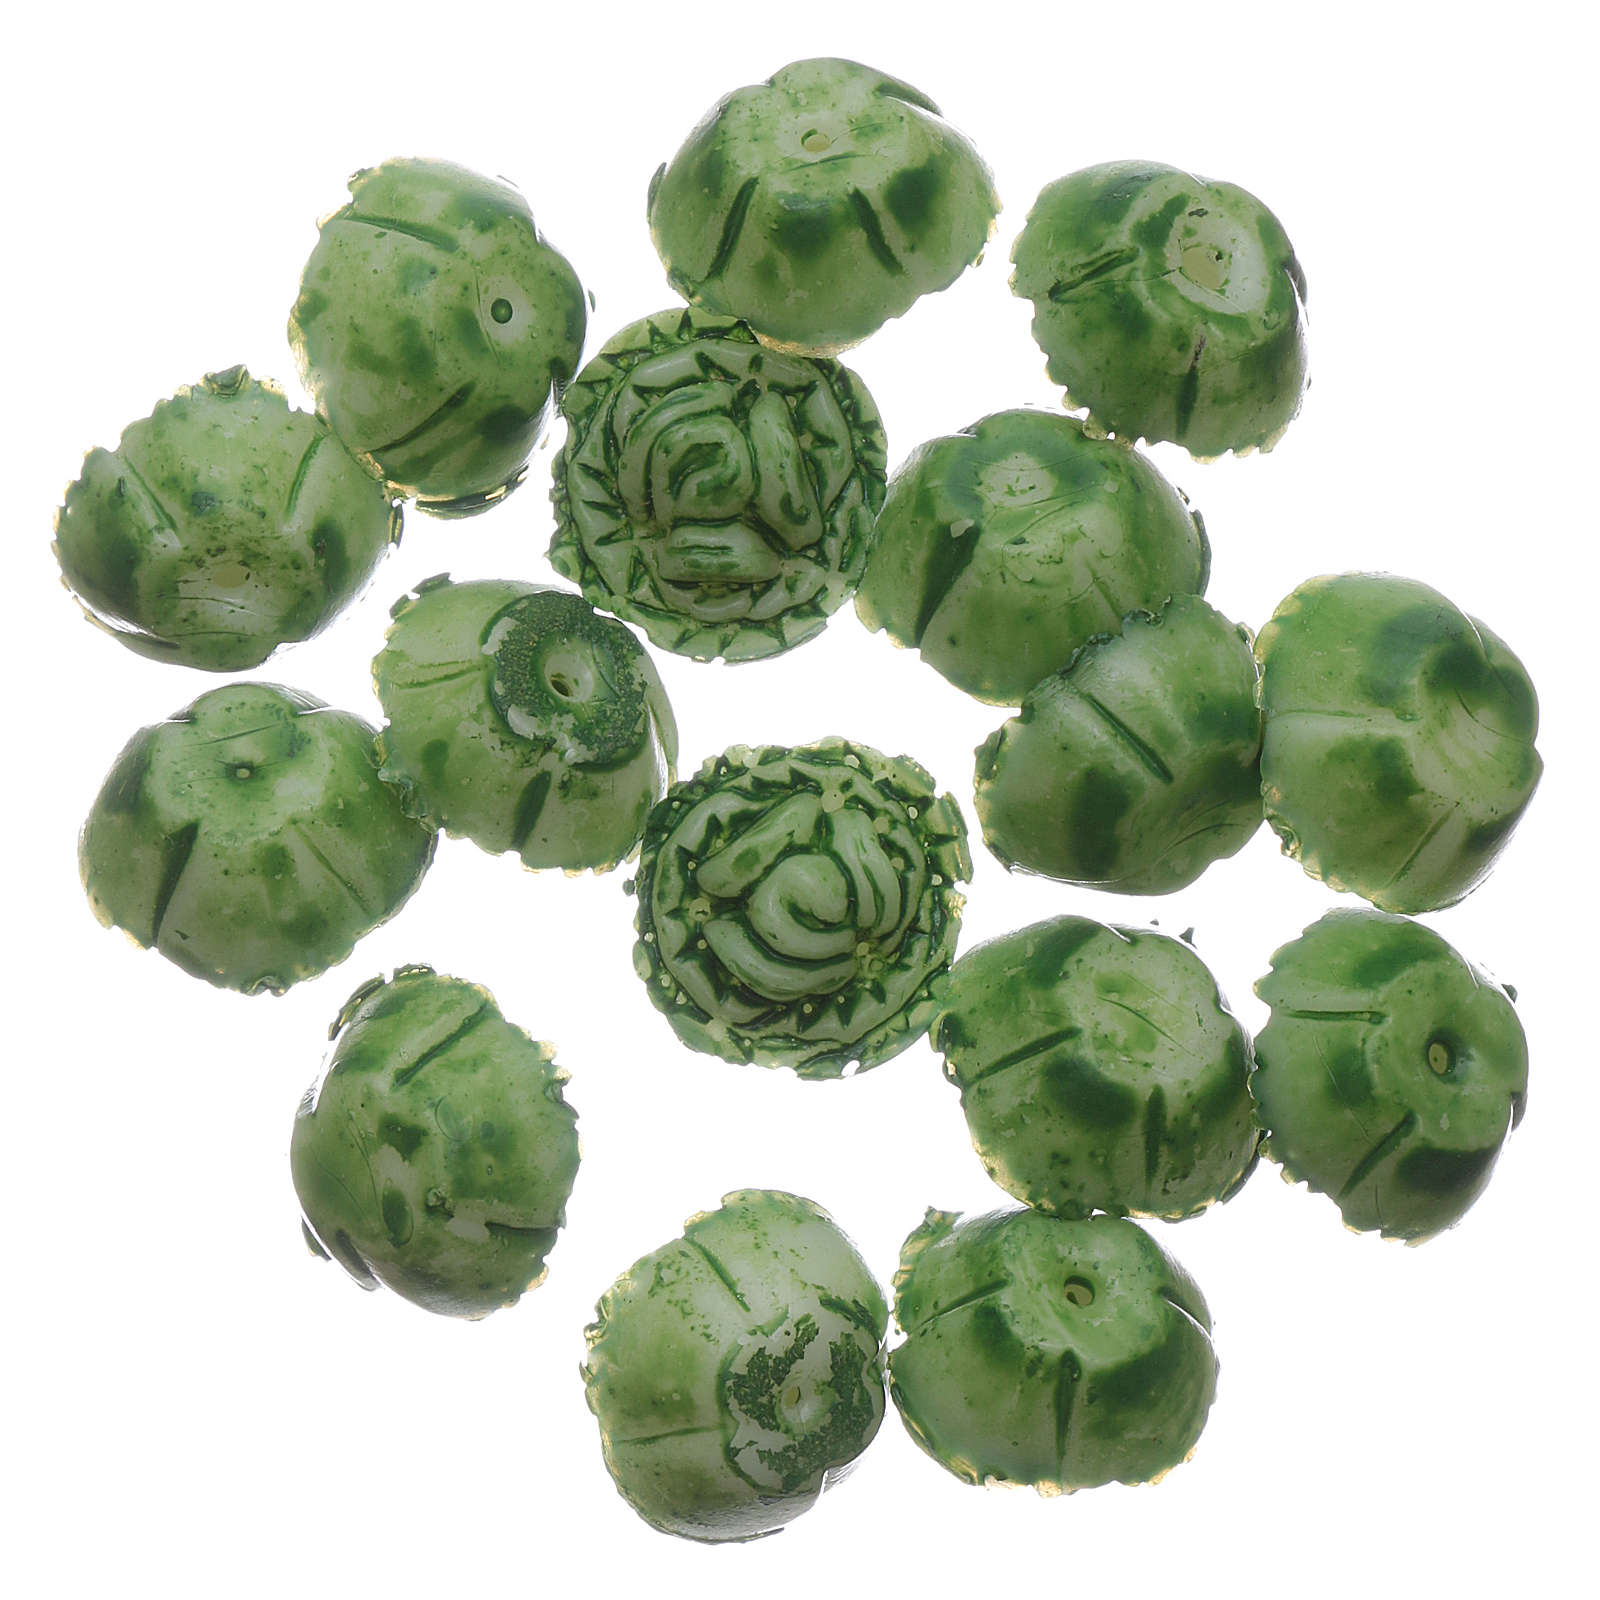 Cabbage 24 pieces for DIY Nativity Scene 1.5x1.5 cm 4